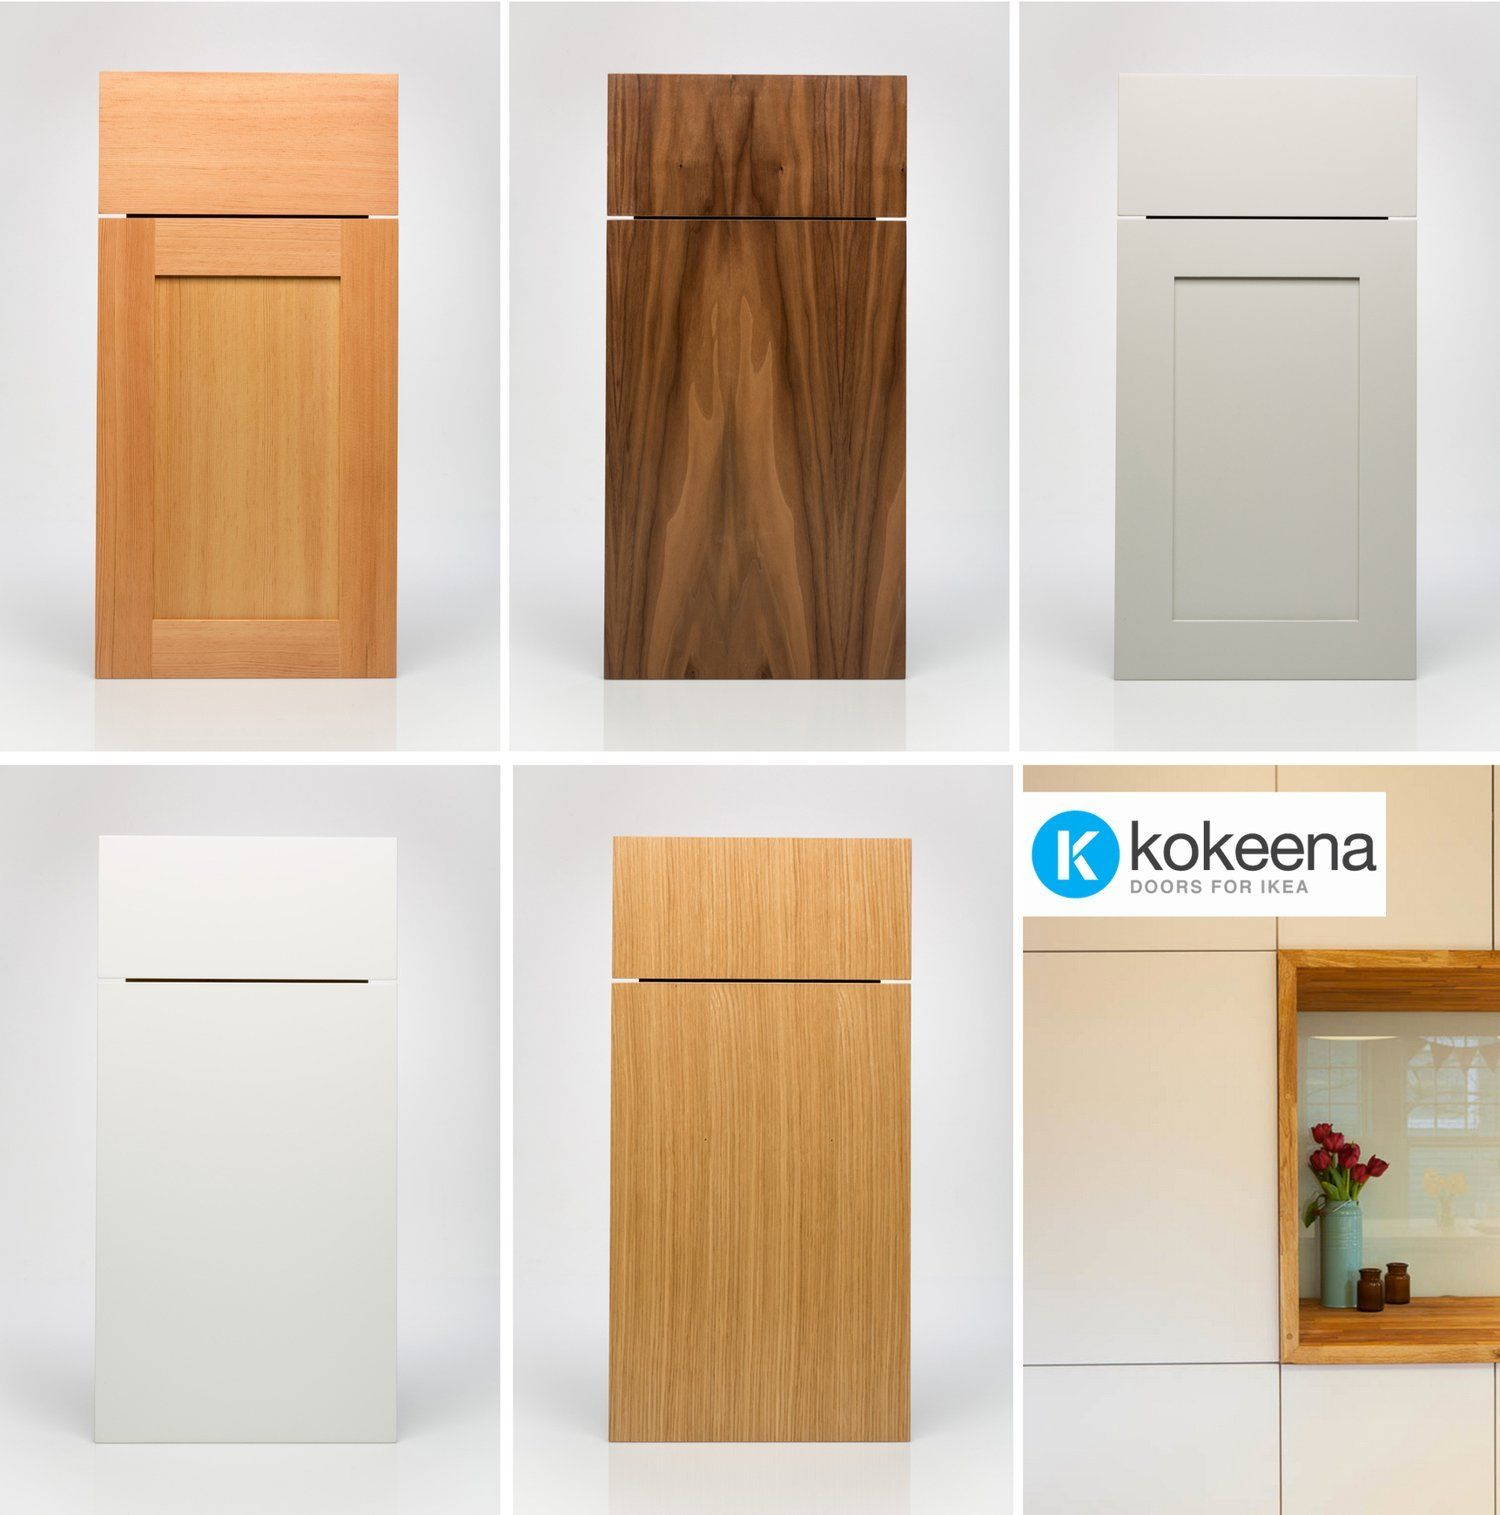 Kokeena Real Wood Ready Made Cabinet Doors for IKEA AKURUM Kitchens